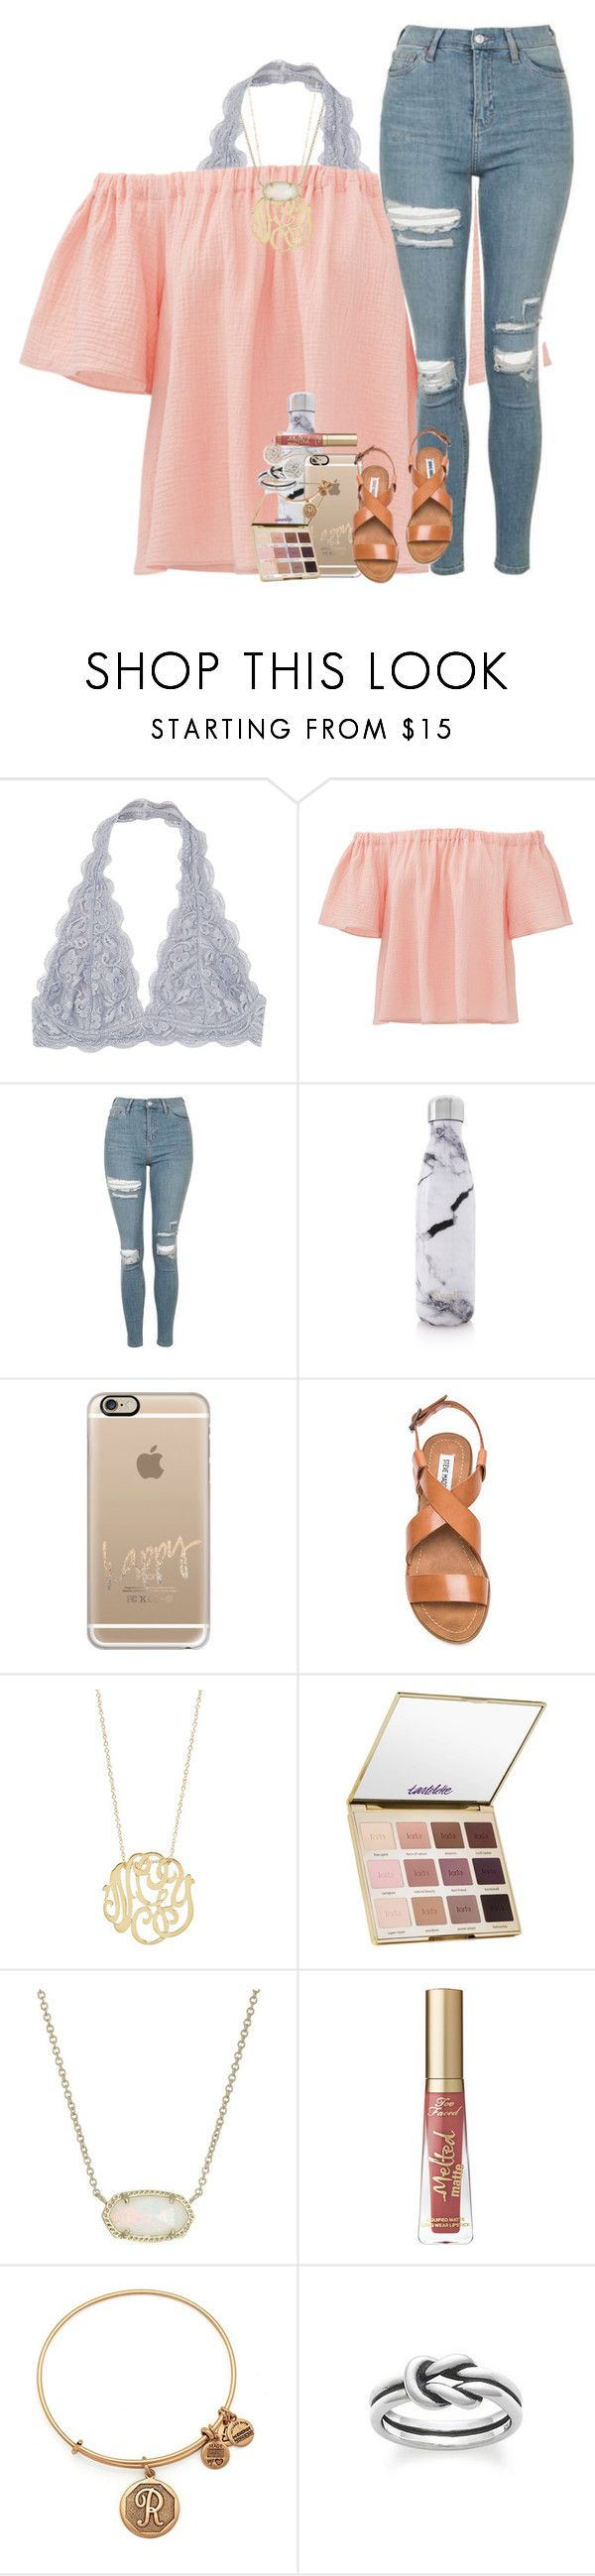 """you're the fire & the flood."" by ellaswiftie13 on Polyvore featuring Rebecca Taylor, Topshop, S'well, Casetify, Steve Madden, Ginette NY, tarte, Kendra Scott, Alex and Ani and Avery"